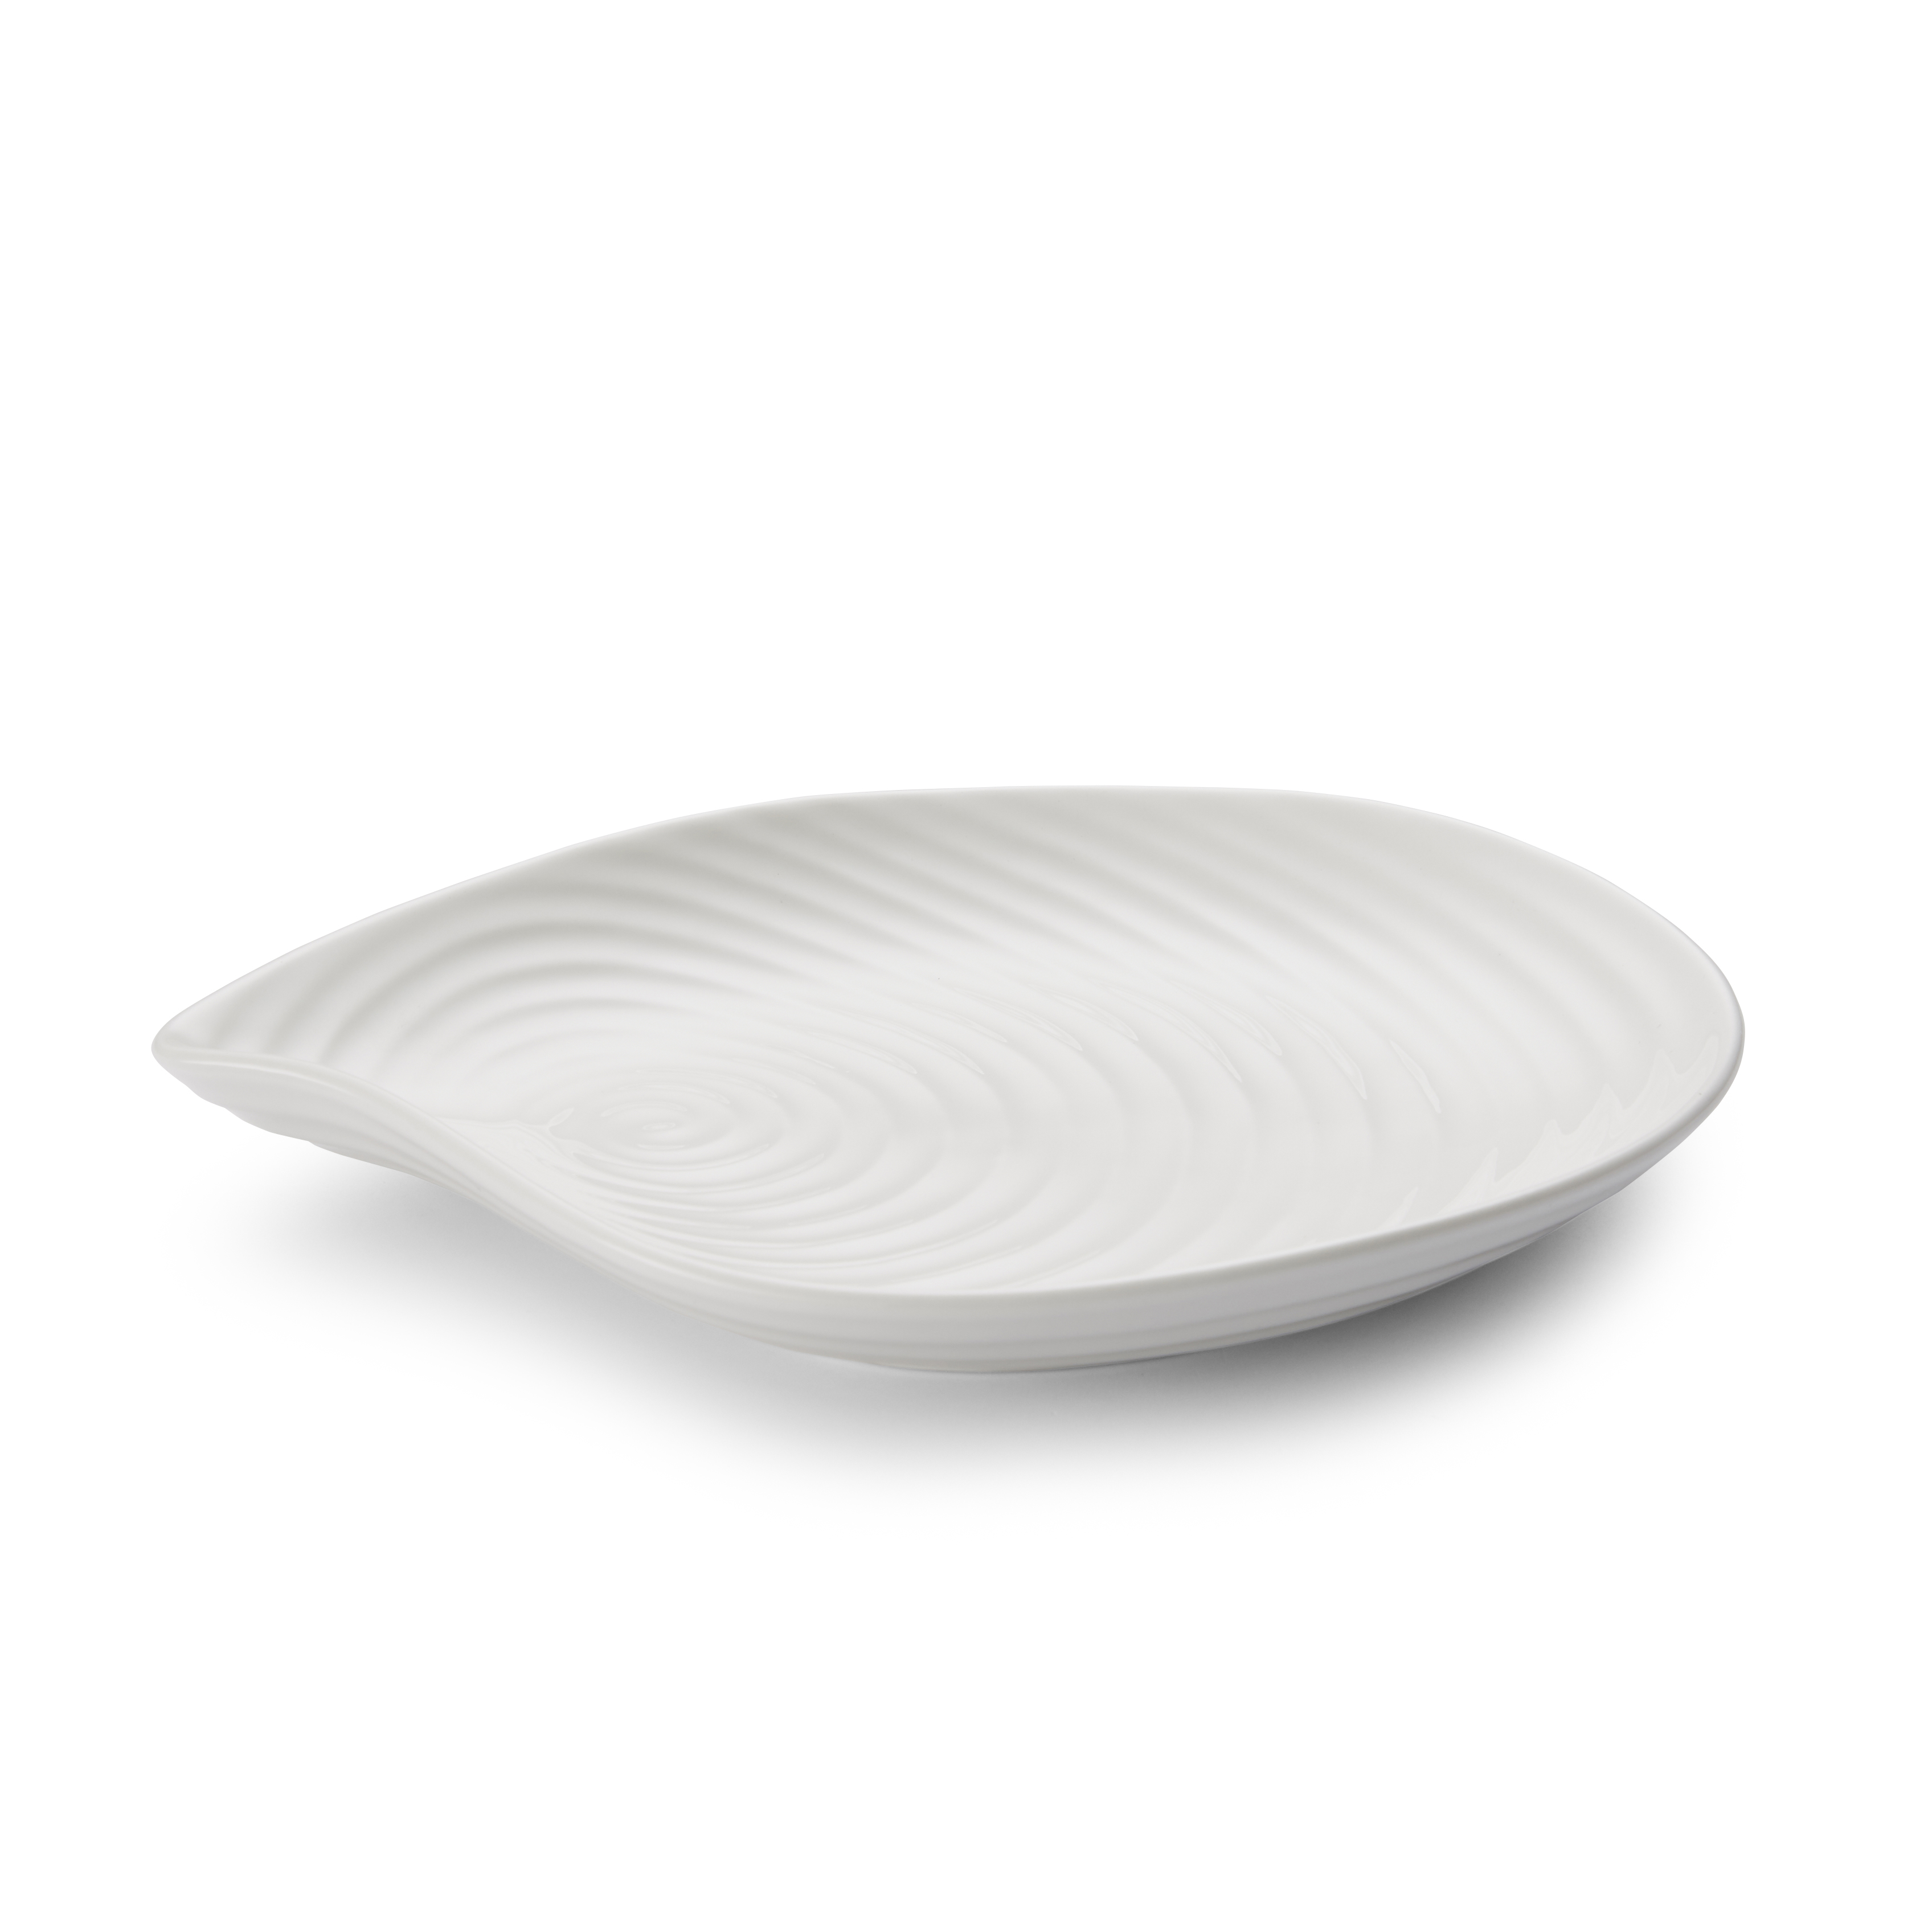 Sophie Conran for Portmeirion 8.75 Inch White Shell Shaped Serving Plate image number 0